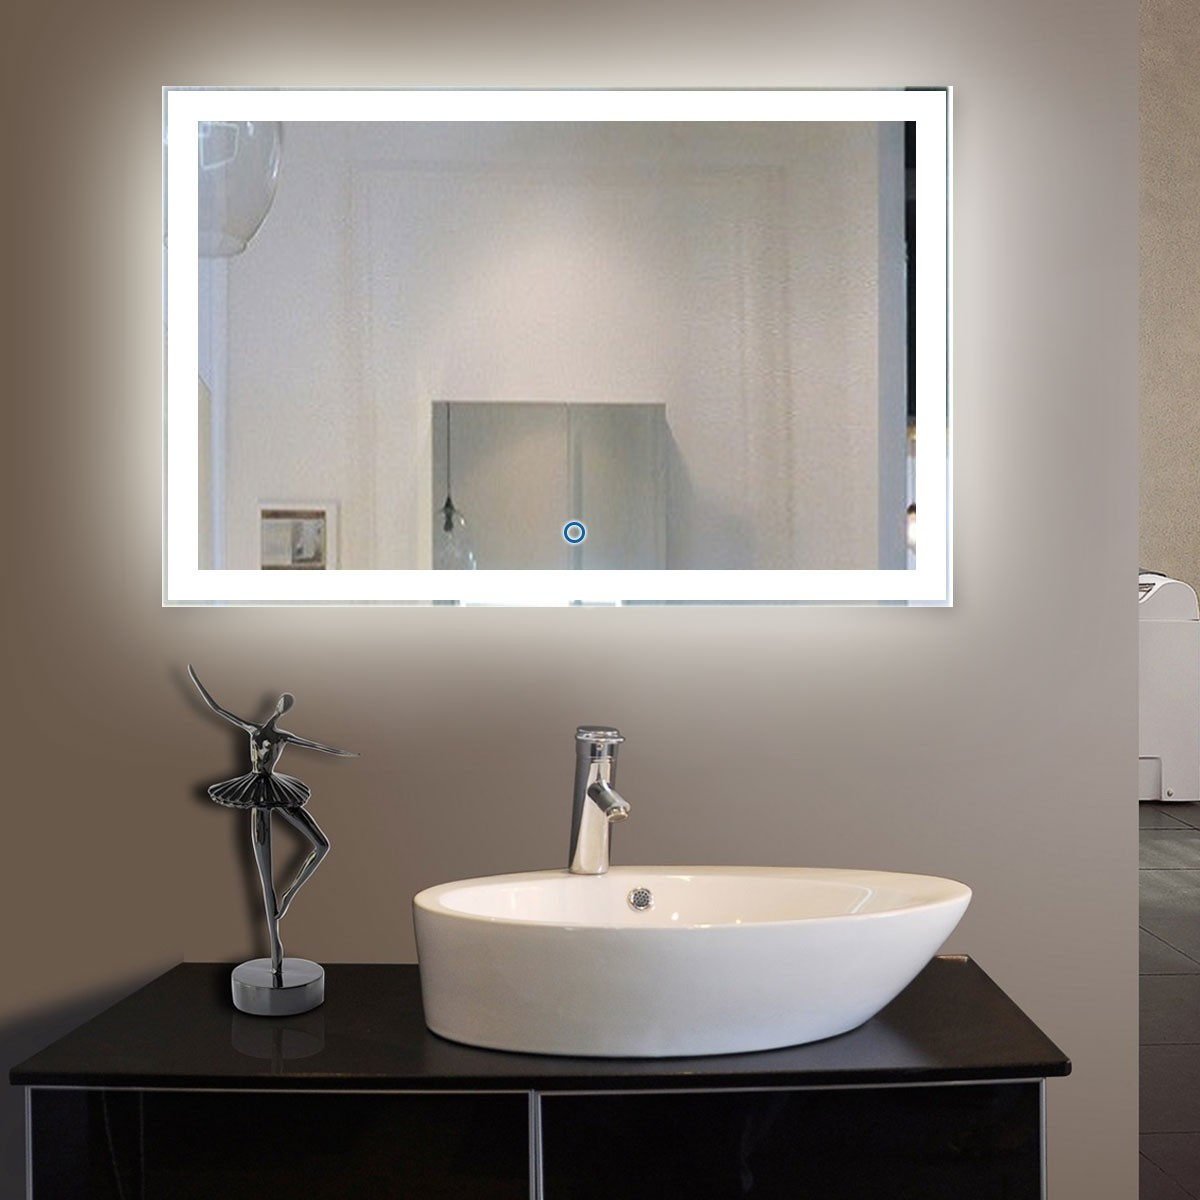 55 x 36 In. Horizontal LED Lighted Bathroom Mirror, Touch Button (DK-OD-N031-C)